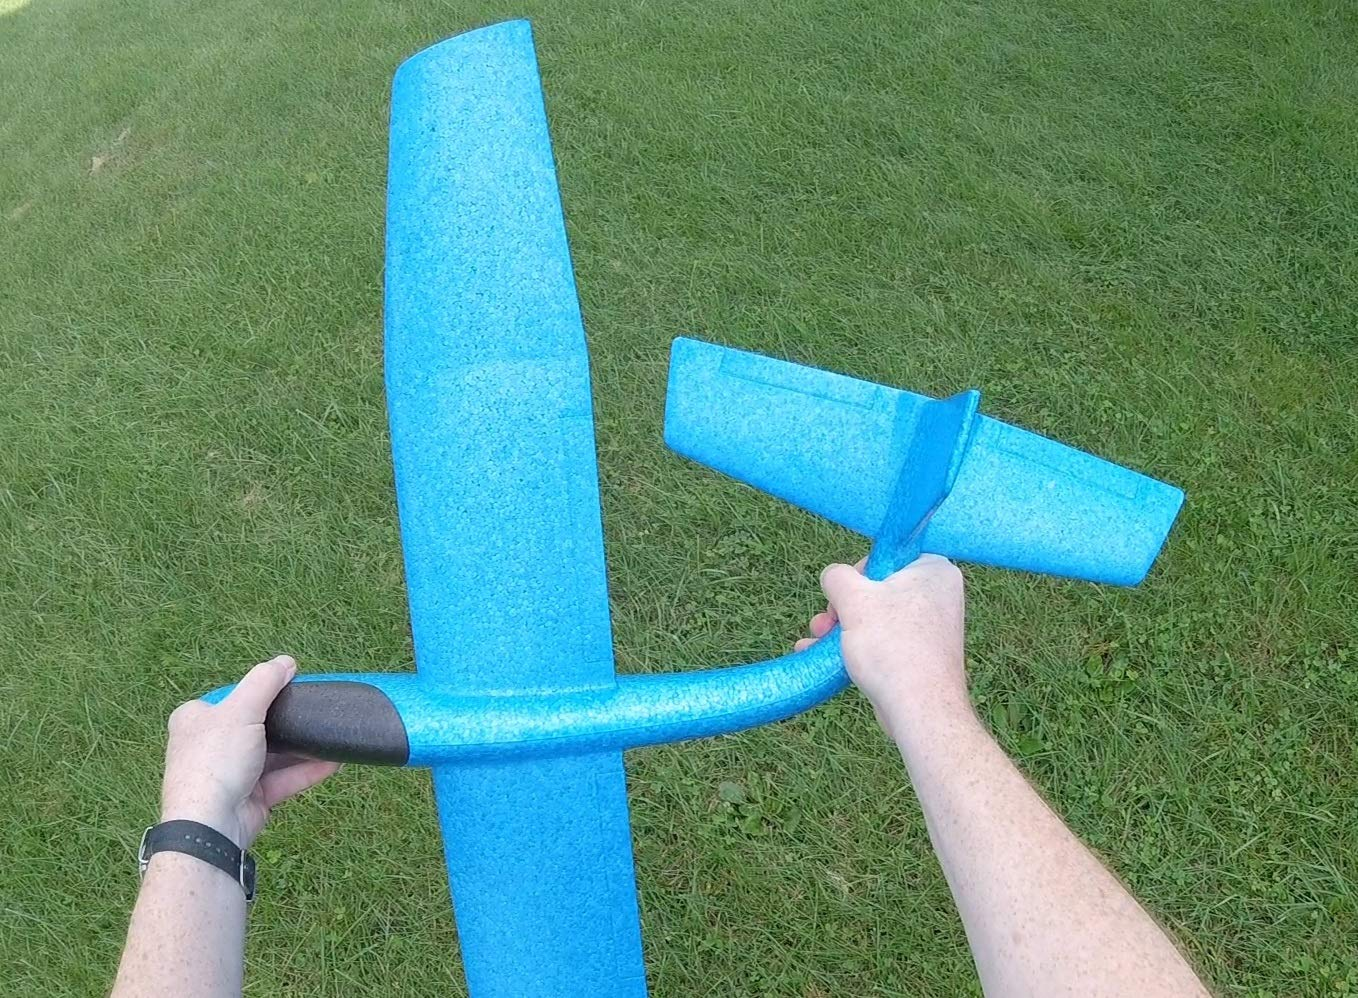 G-I-A-N-T (Almost 3 FEET), Great Flying, Almost Unbreakable, Large Foam Glider Plane. Virgin EPP Foam. Ideal for RC Conversion! Similar to LIDL Gliders Sold Out in Europe! by Daddy's Flyers (Image #7)